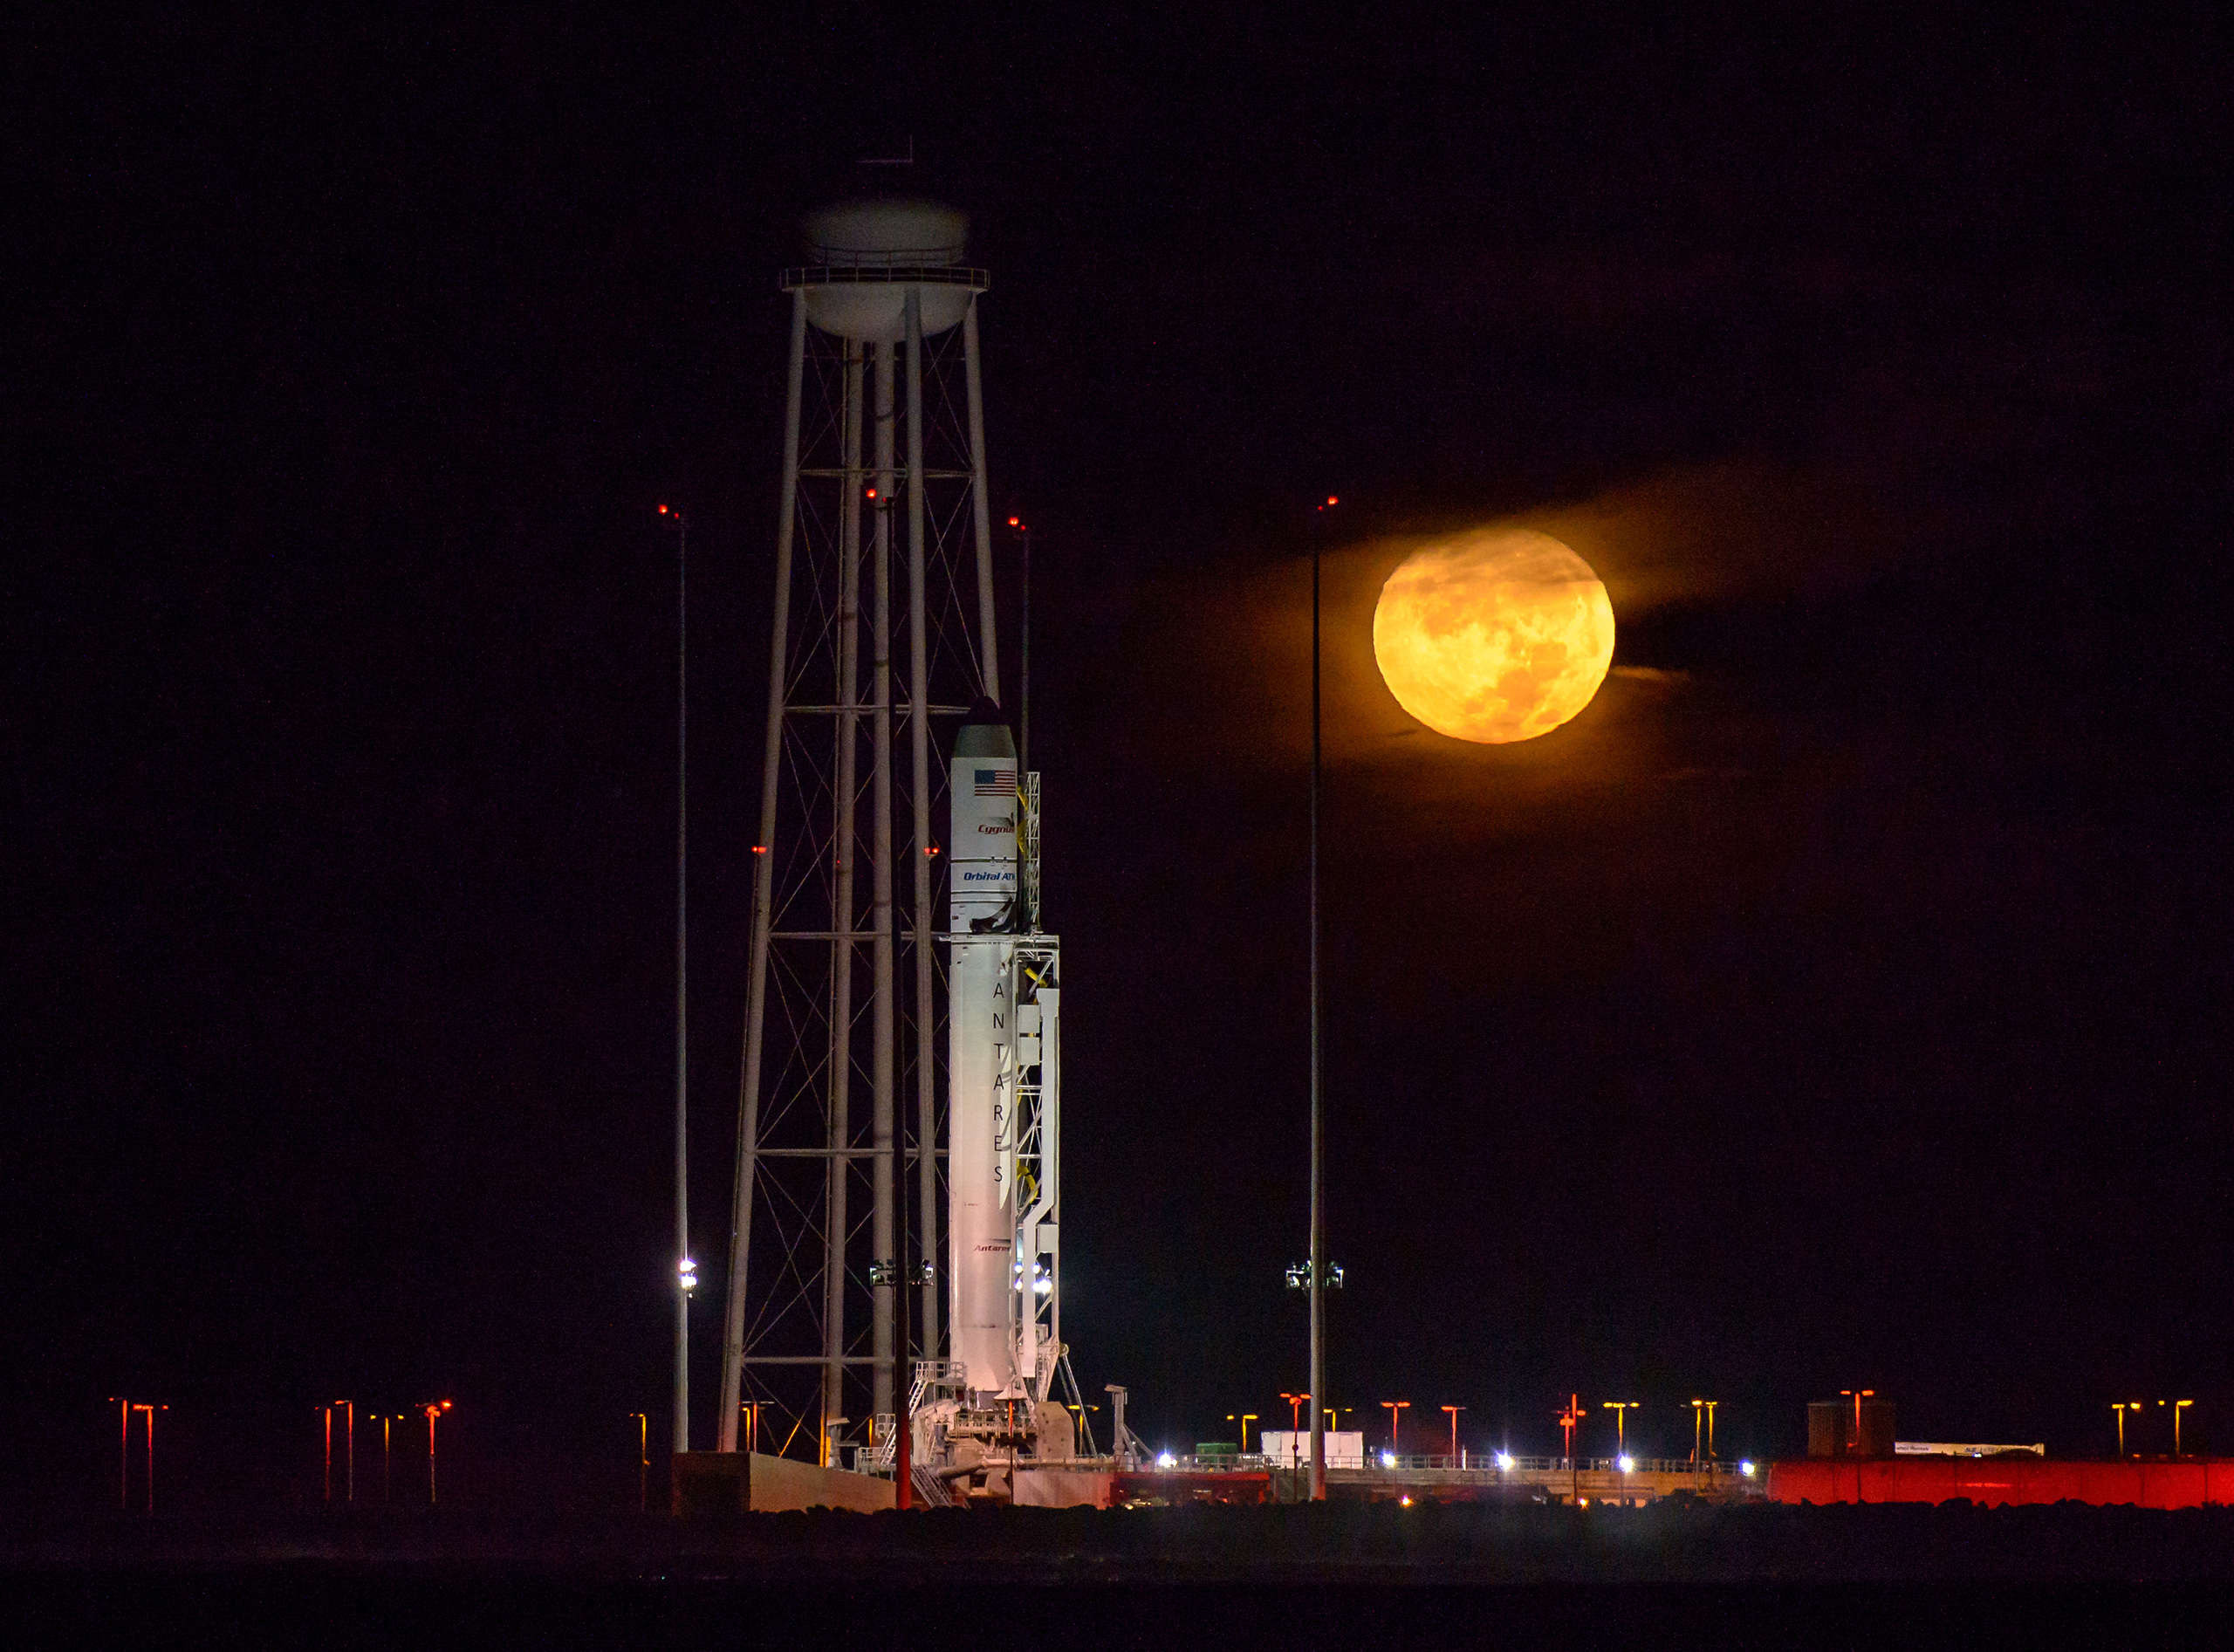 The Orbital ATK Antares rocket, with the Cygnus spacecraft onboard, is seen on launch Pad-0A as the moon sets, predawn,  at NASA's Wallops Flight Facility in Virginia, on Oct. 15, 2016.